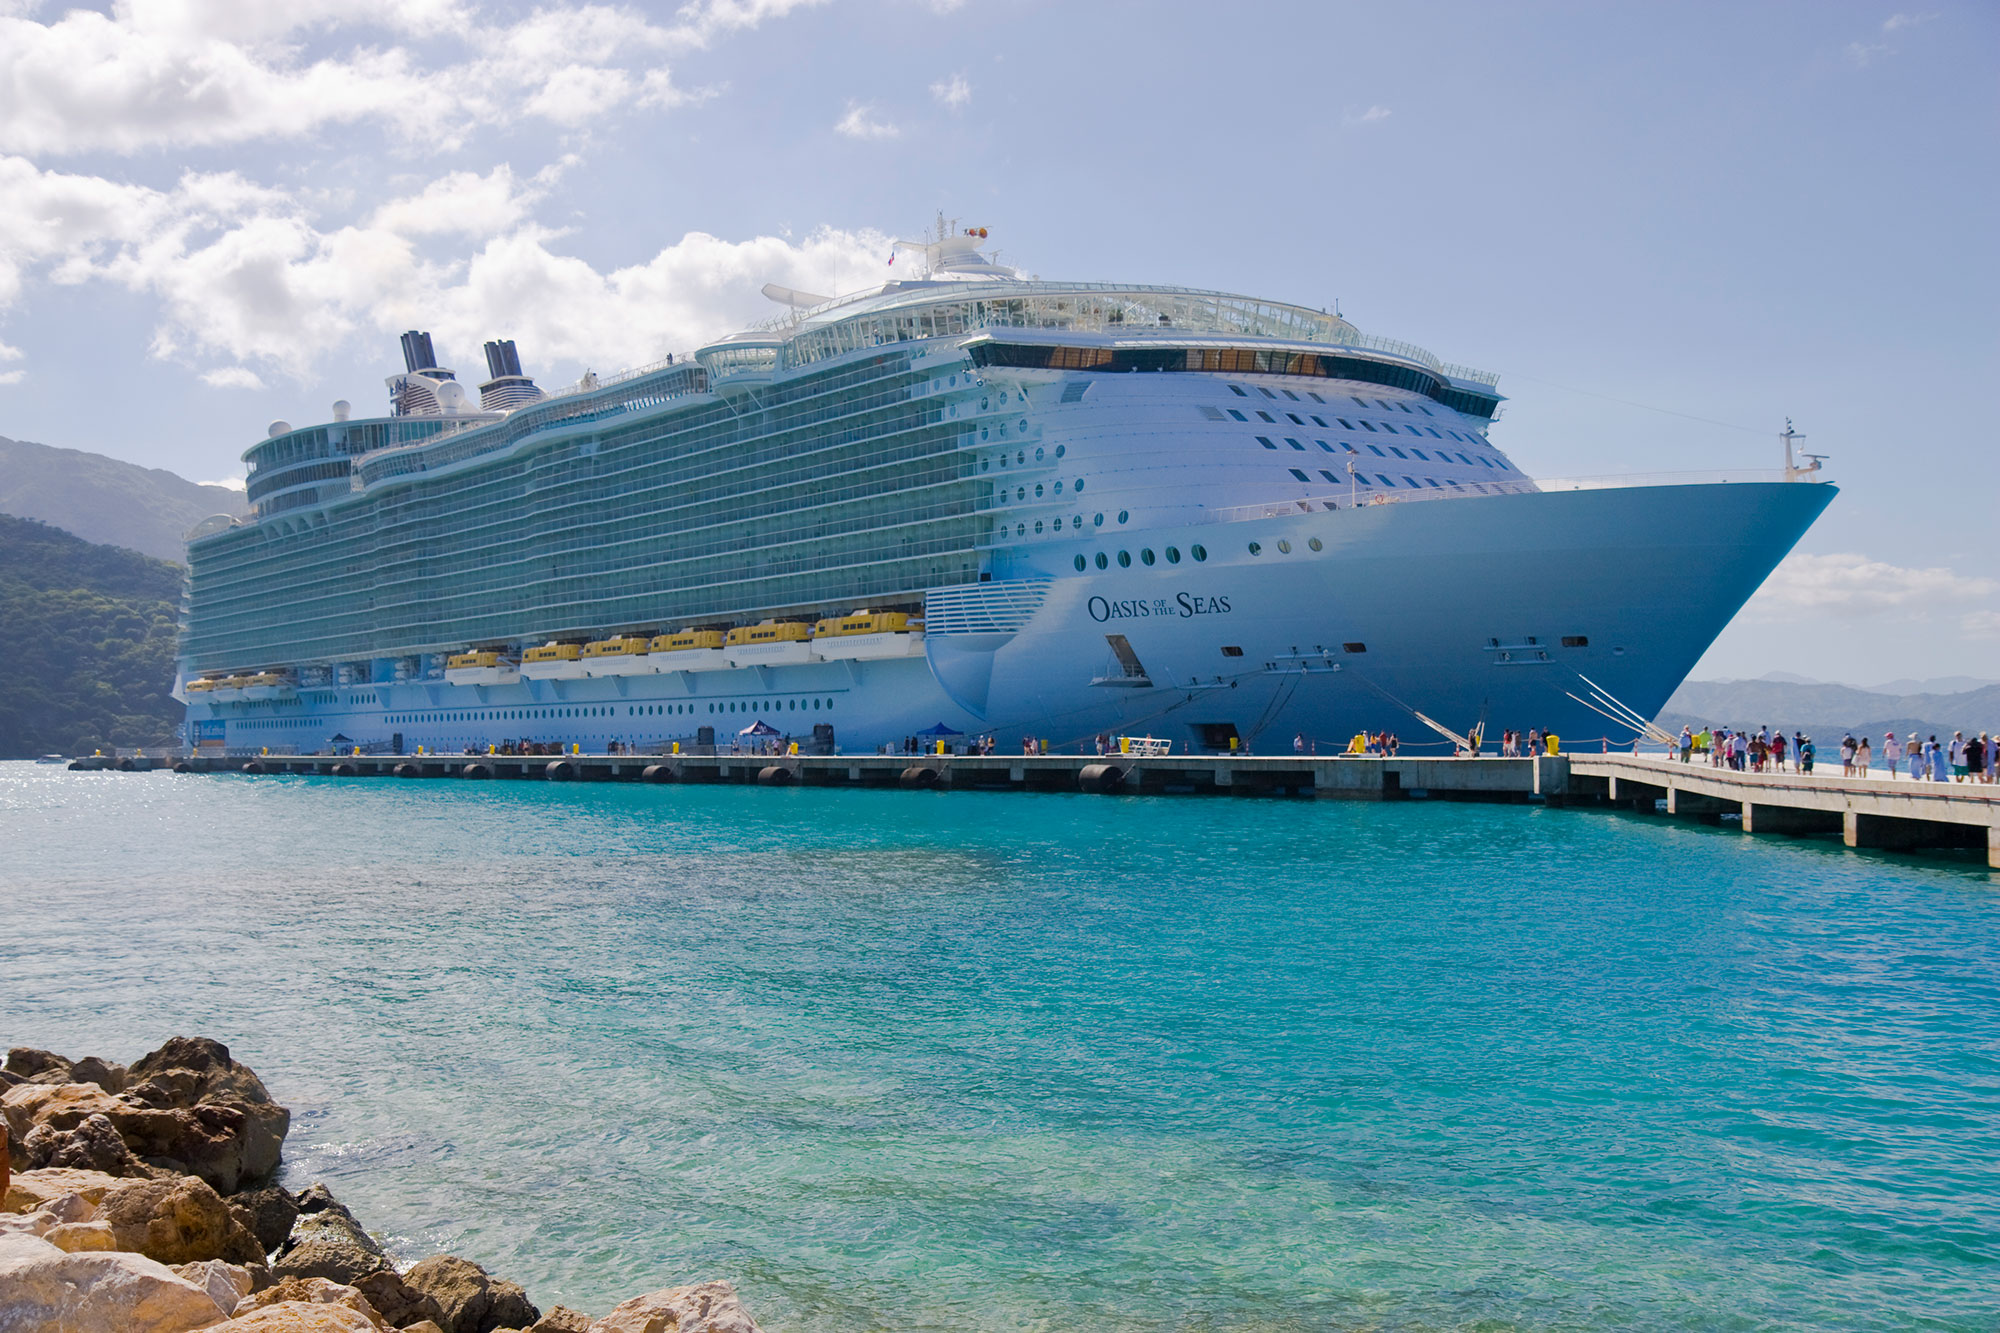 Nightmare at Sea: Norovirus Outbreak Sickens 277 Passengers and Crew on Royal Caribbean Cruise